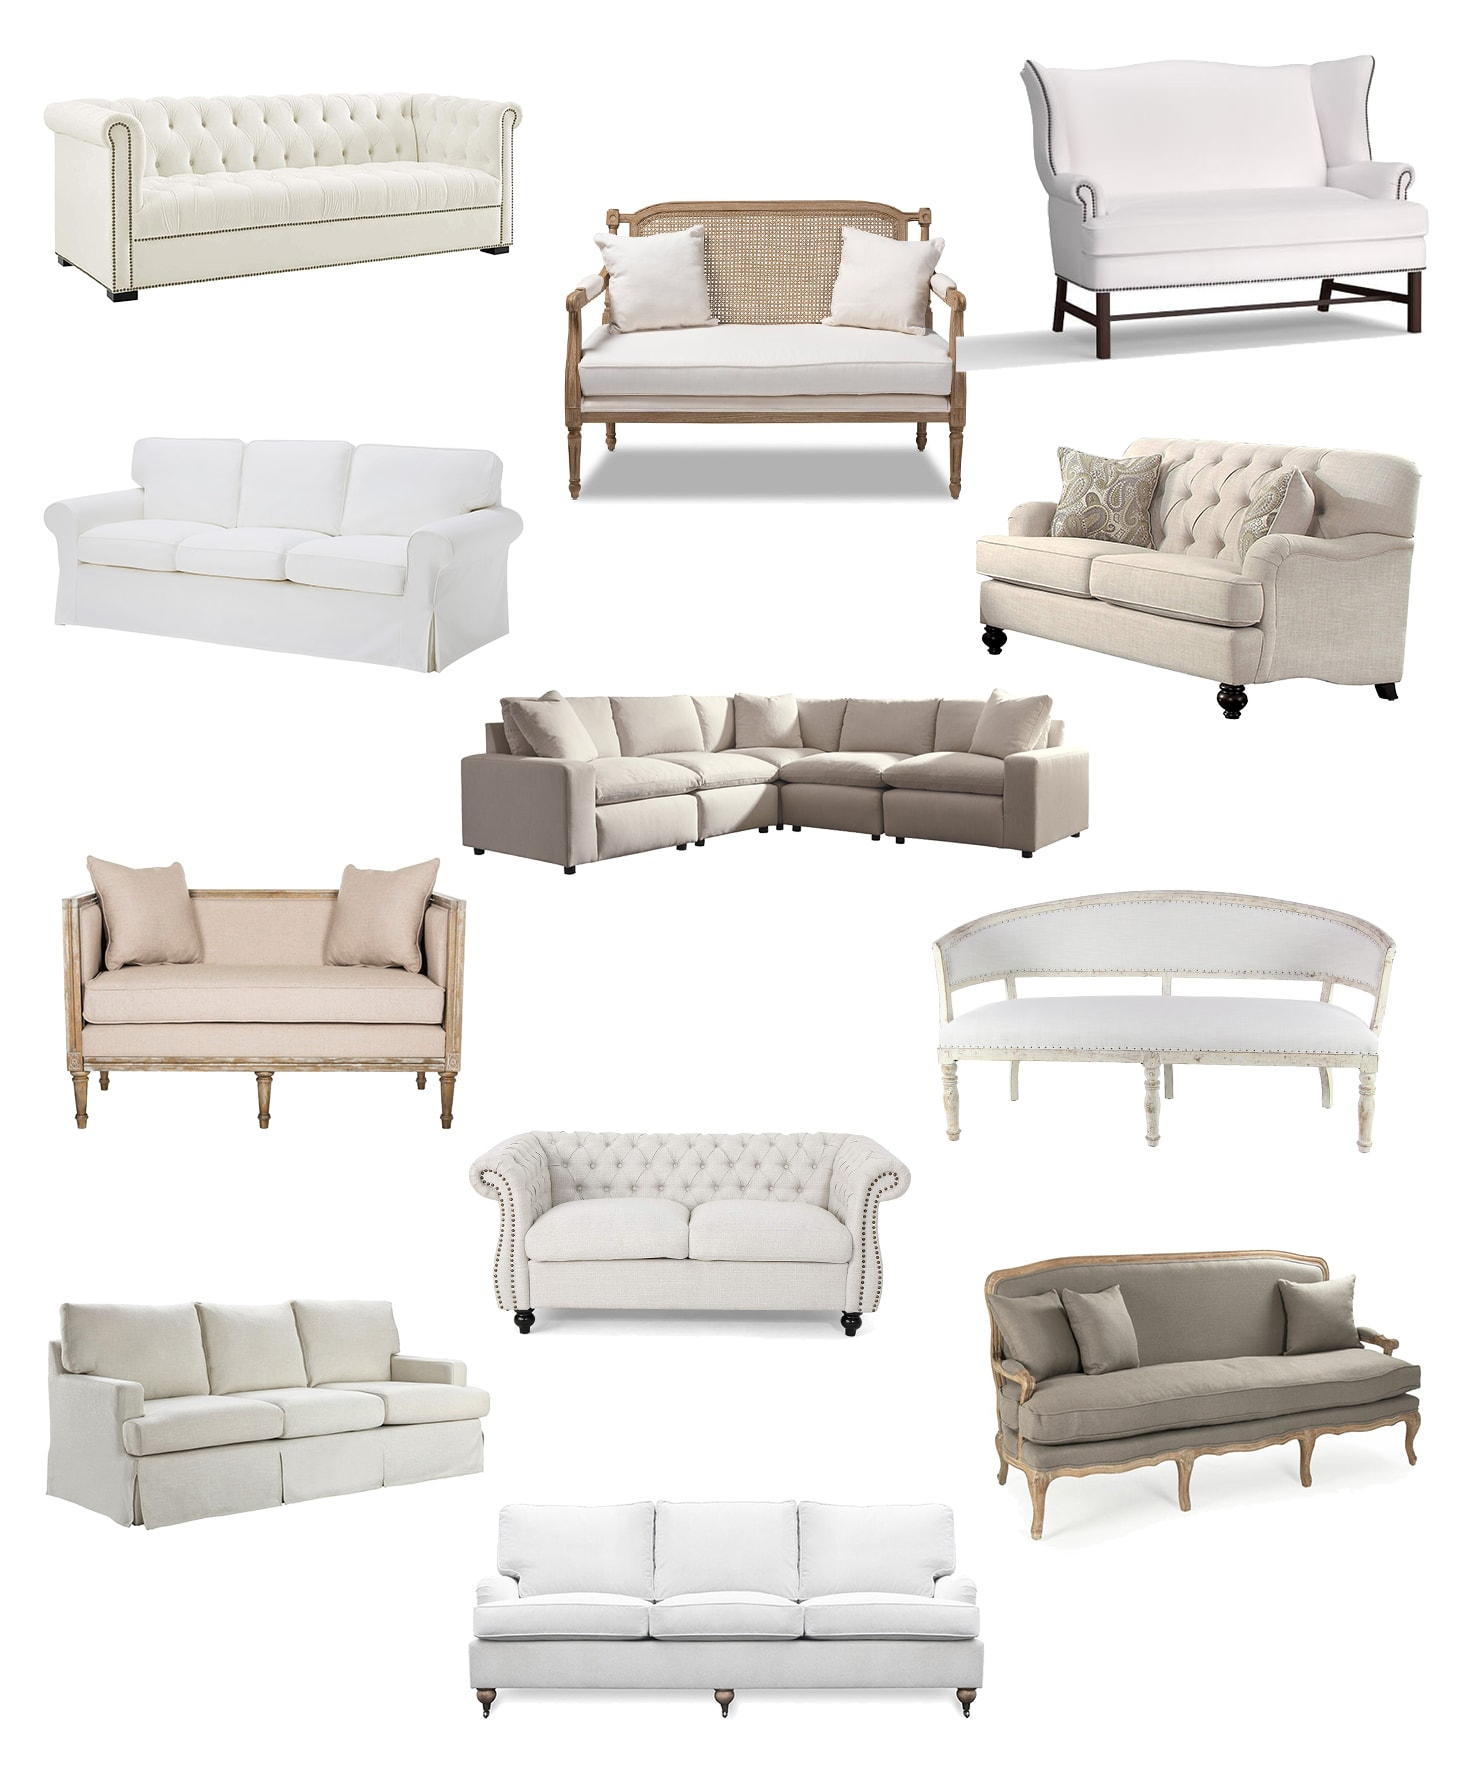 Living Room Sofa: Where to Buy a French Farmhouse Couch